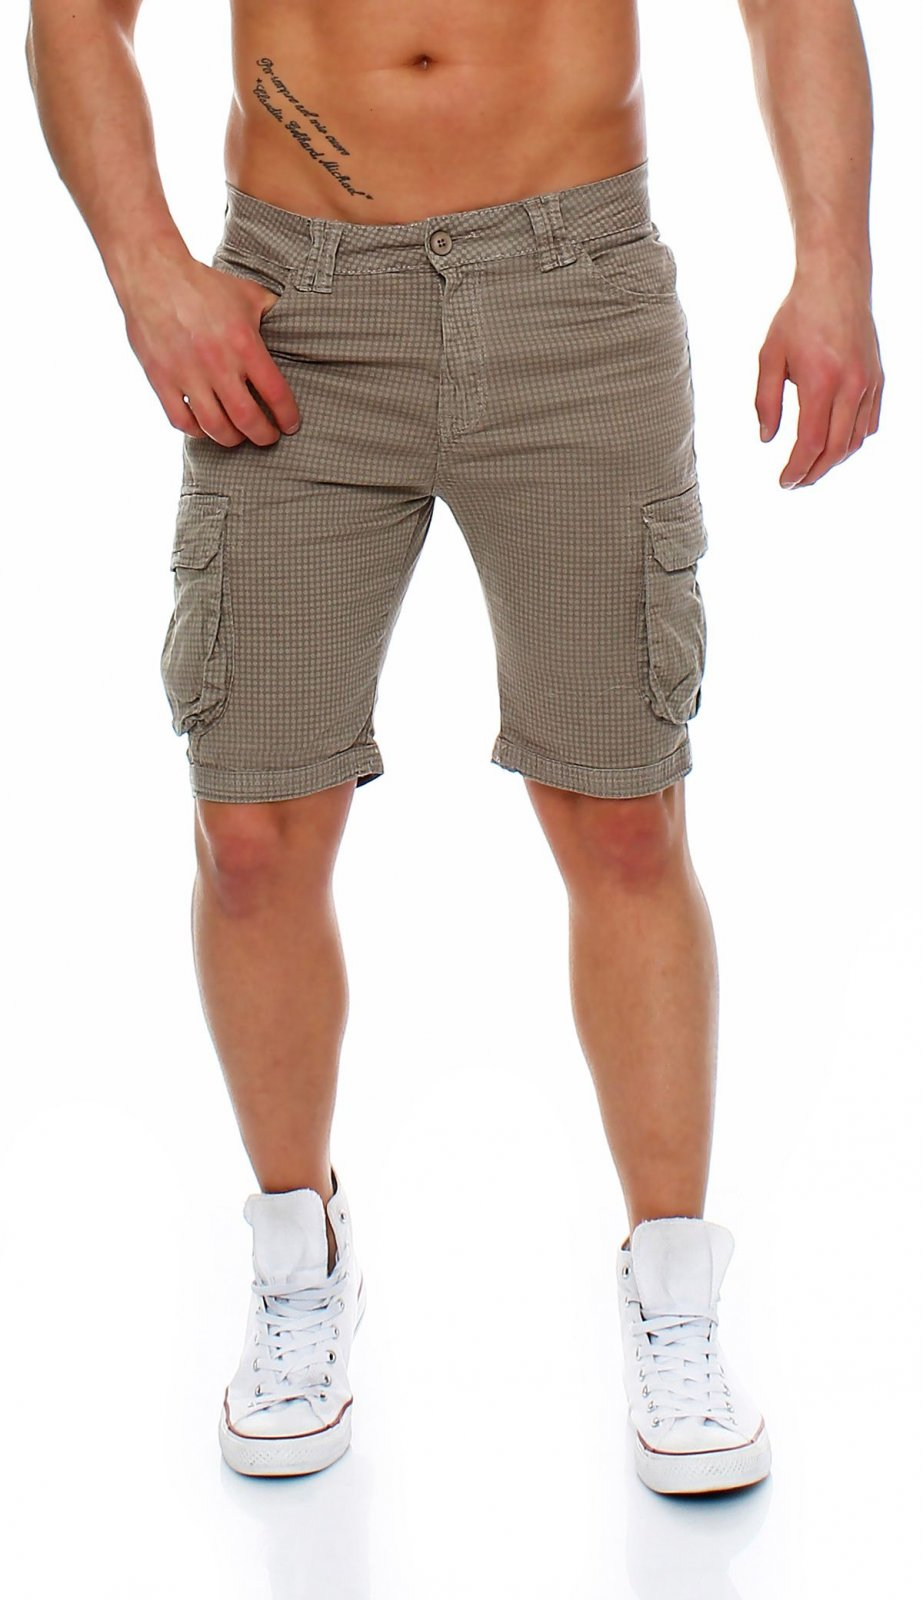 herren cargo shorts bermuda shorts mens pants kurze 5 pocket hose shorts karo ebay. Black Bedroom Furniture Sets. Home Design Ideas